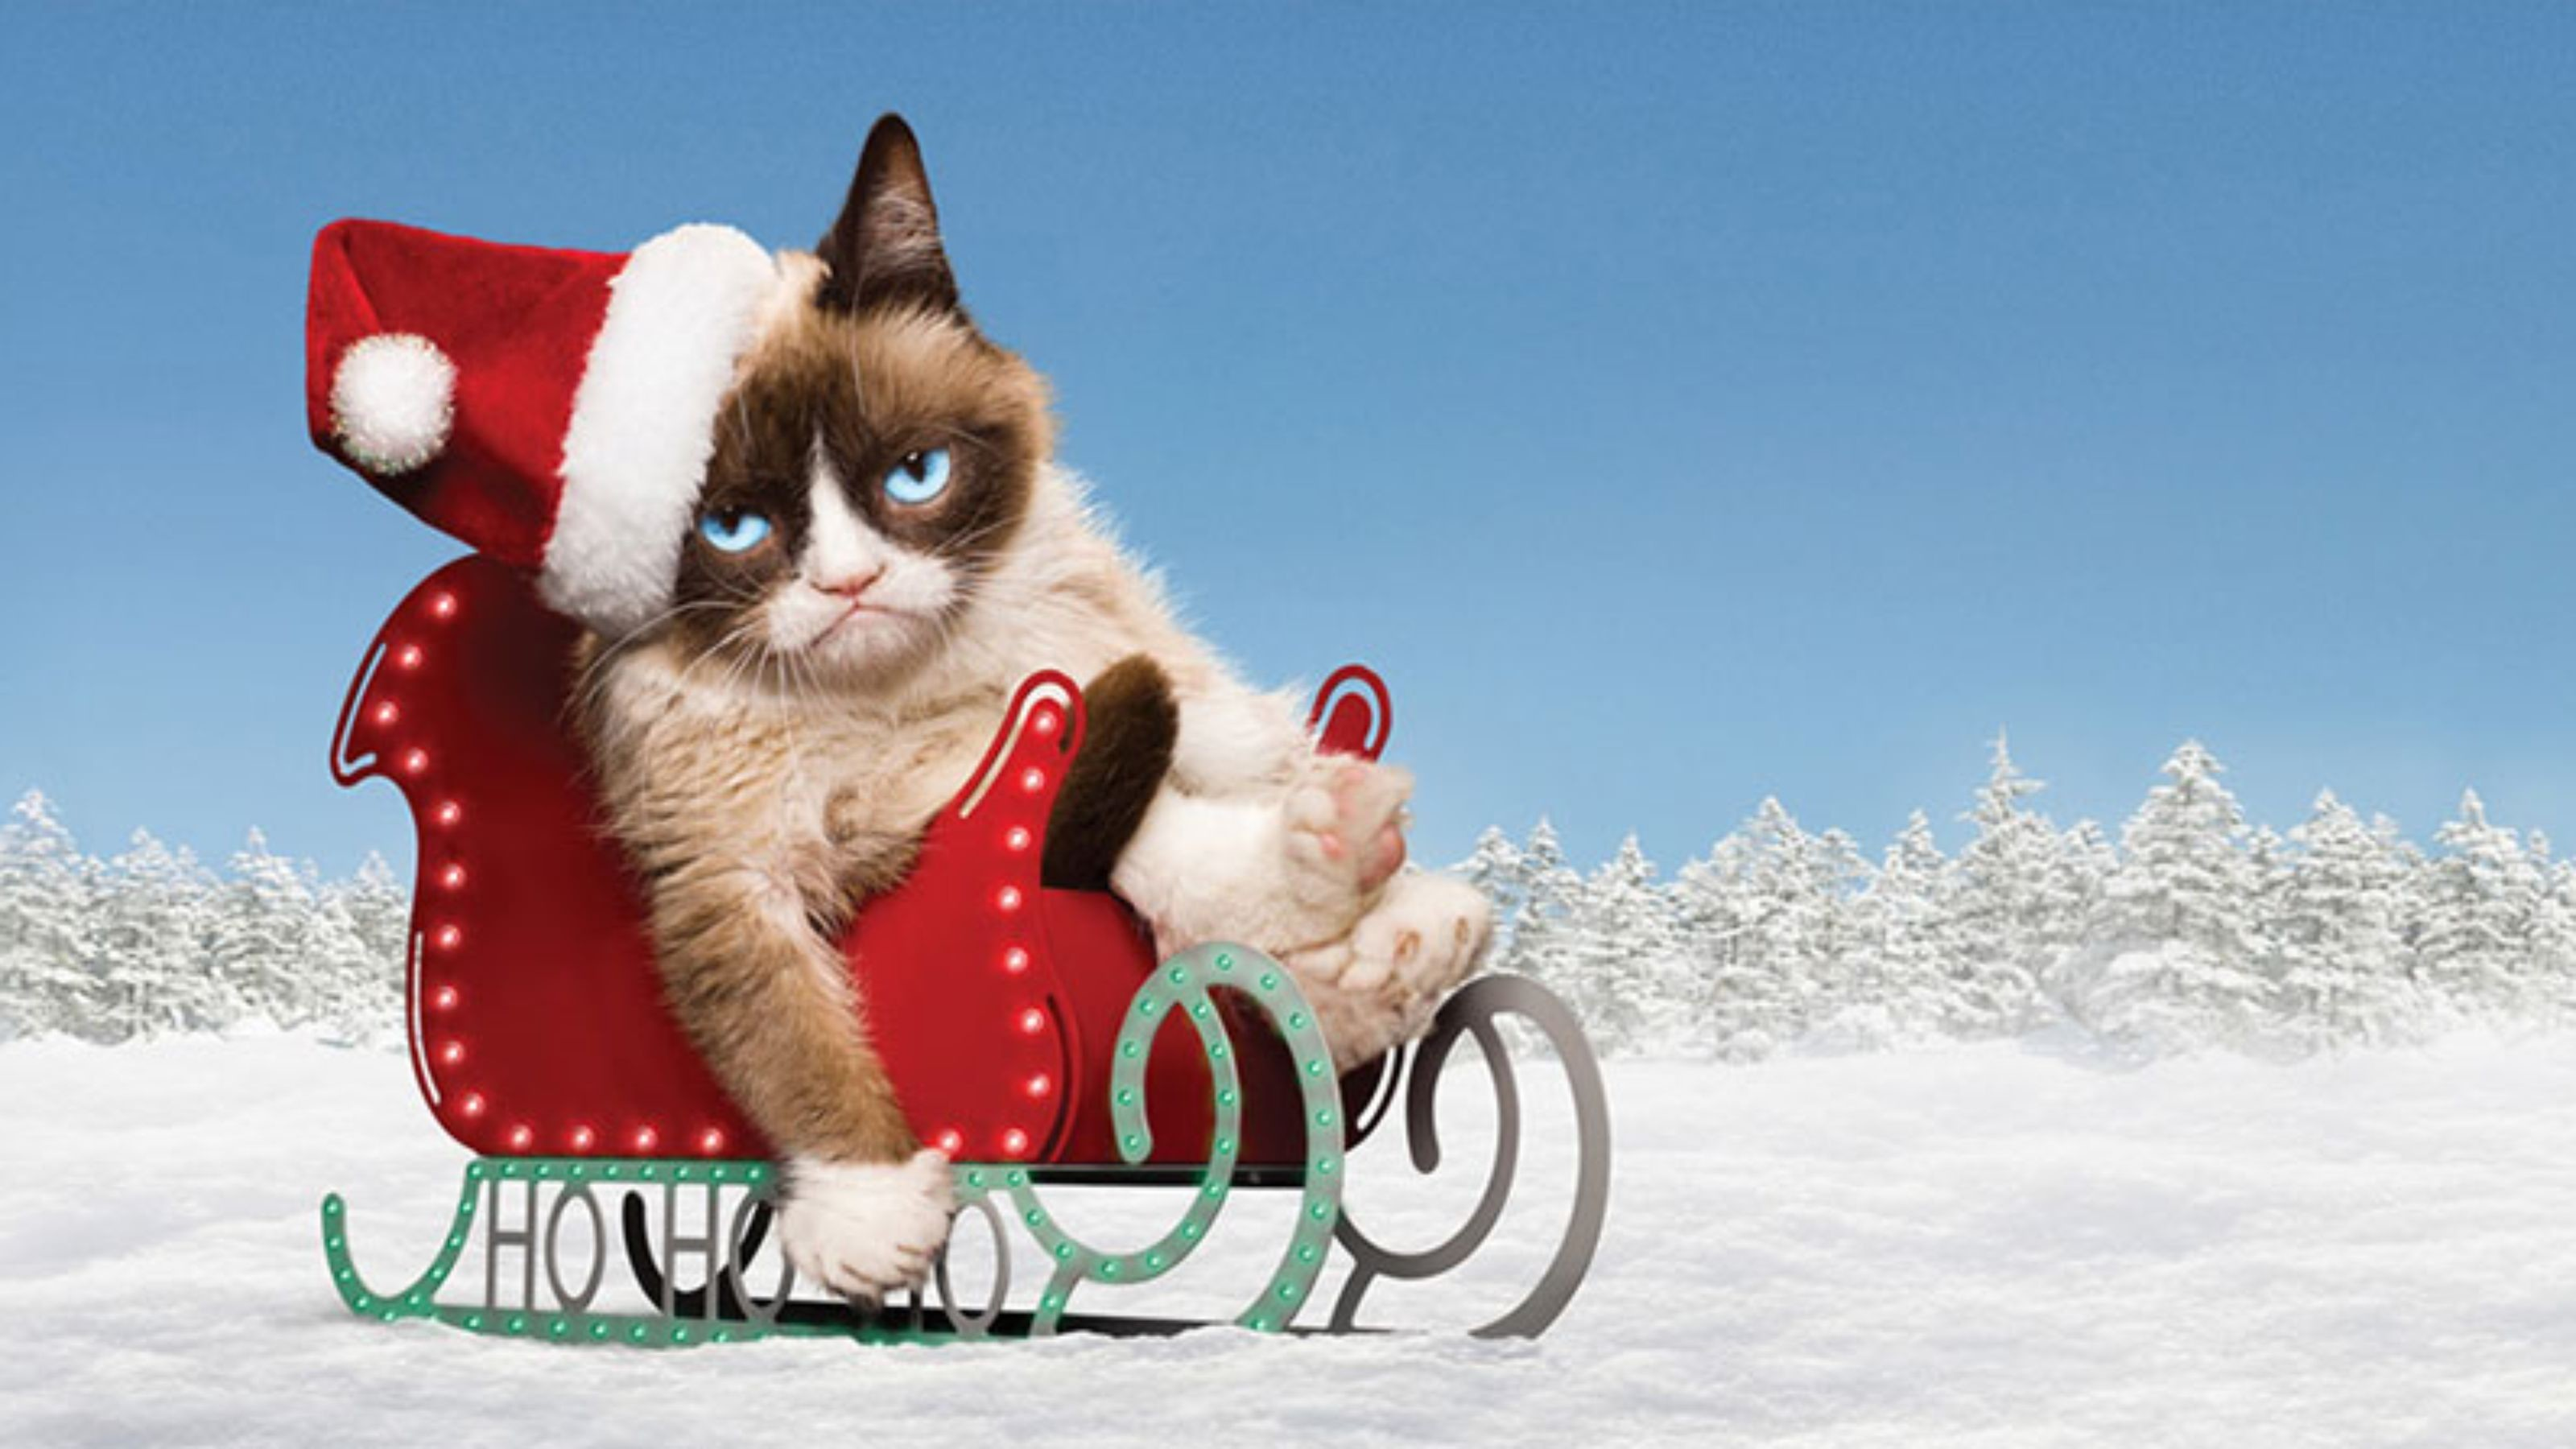 Christmas Cat Wallpaper (75+ images)